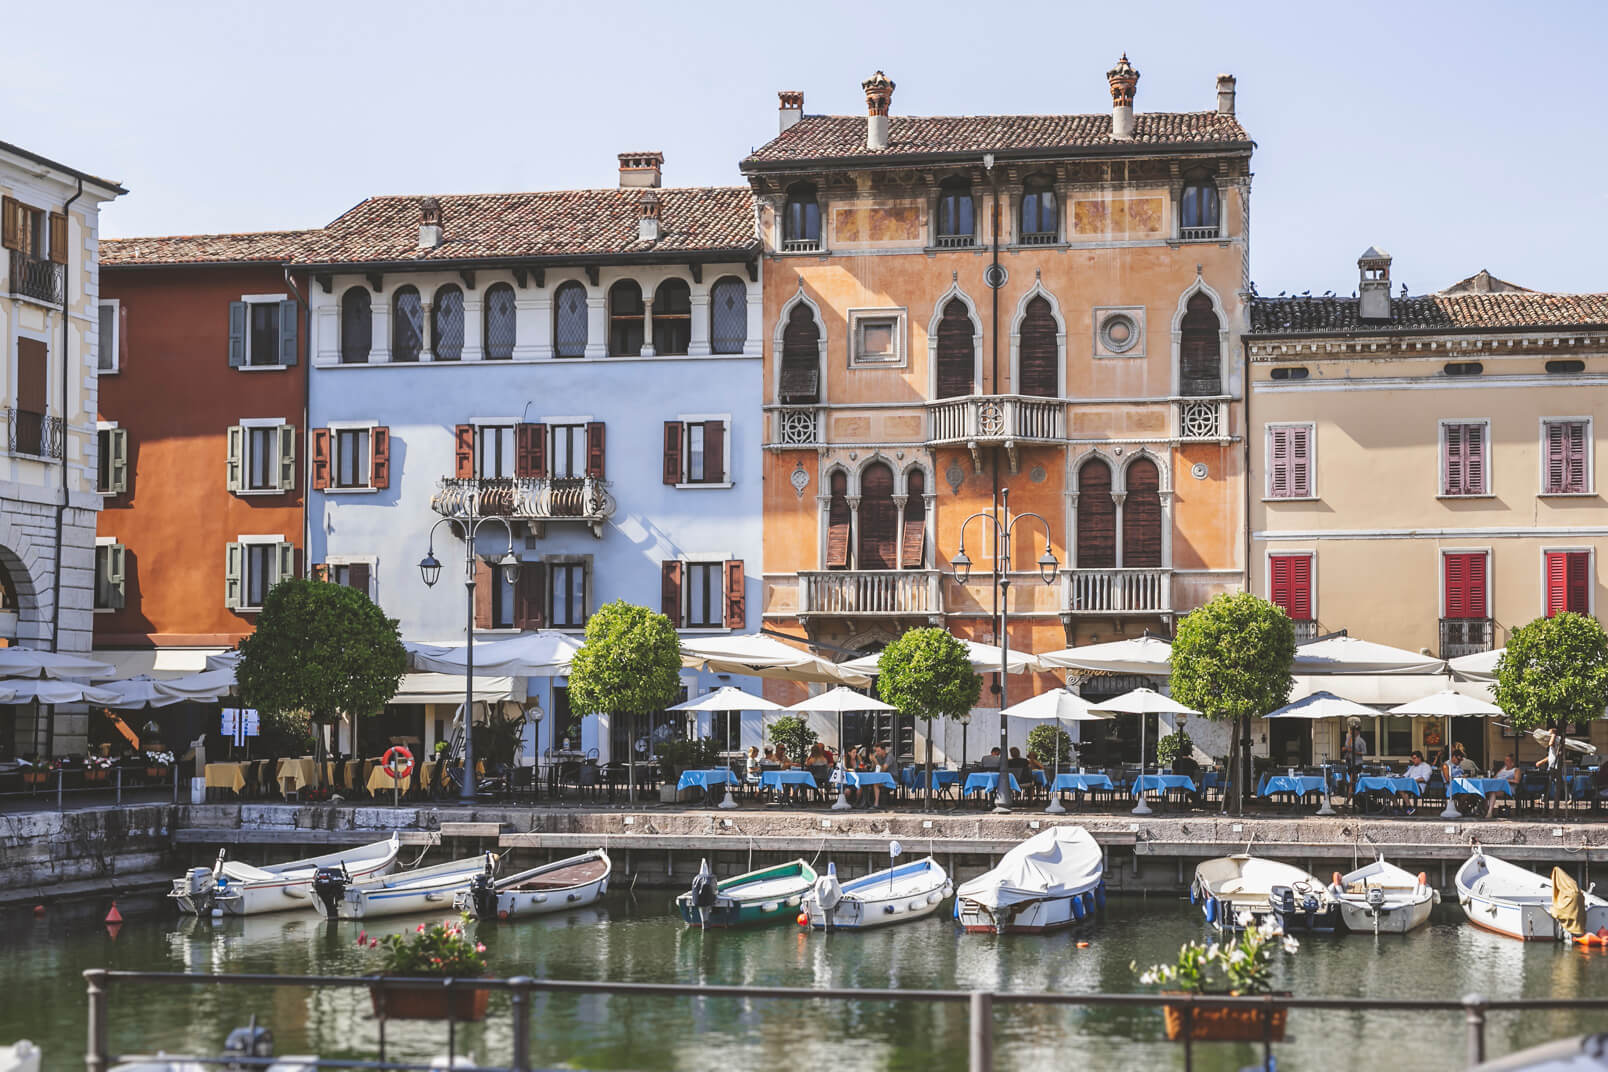 Desenzano del Garda: the old harbour inside the old town.